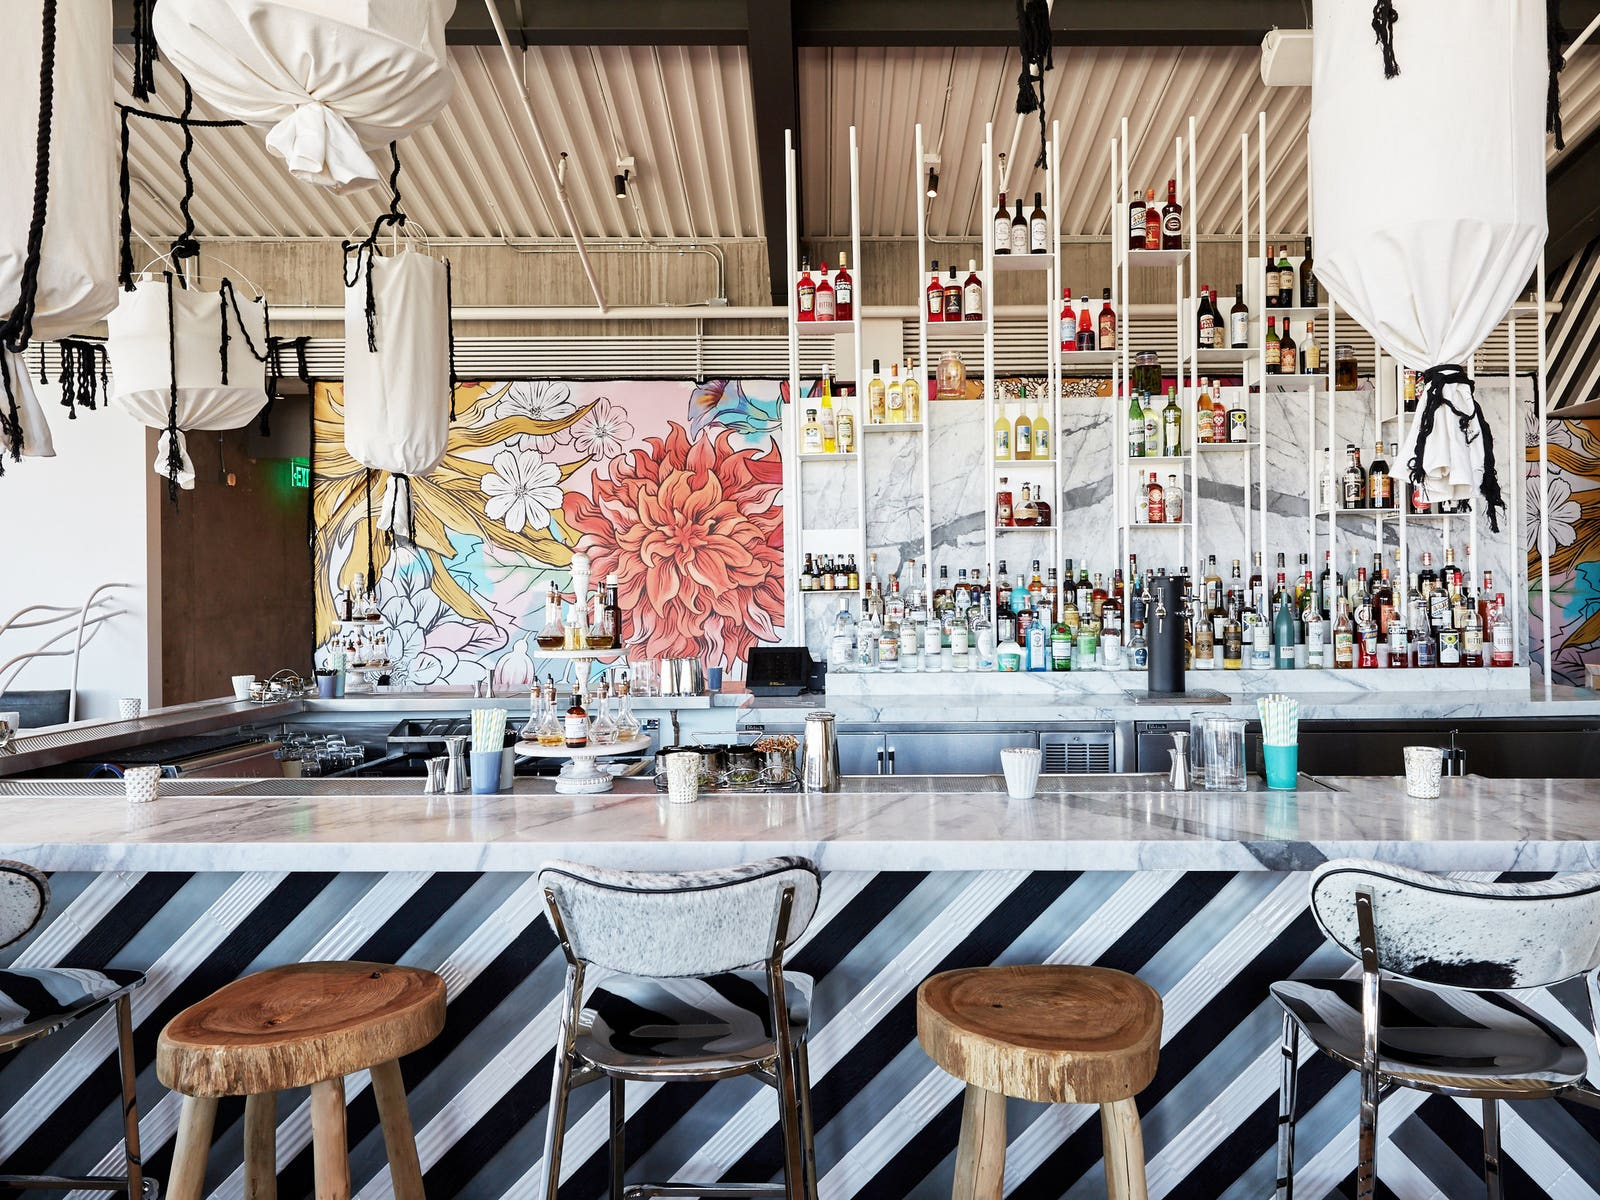 The bar at Margot in Culver City